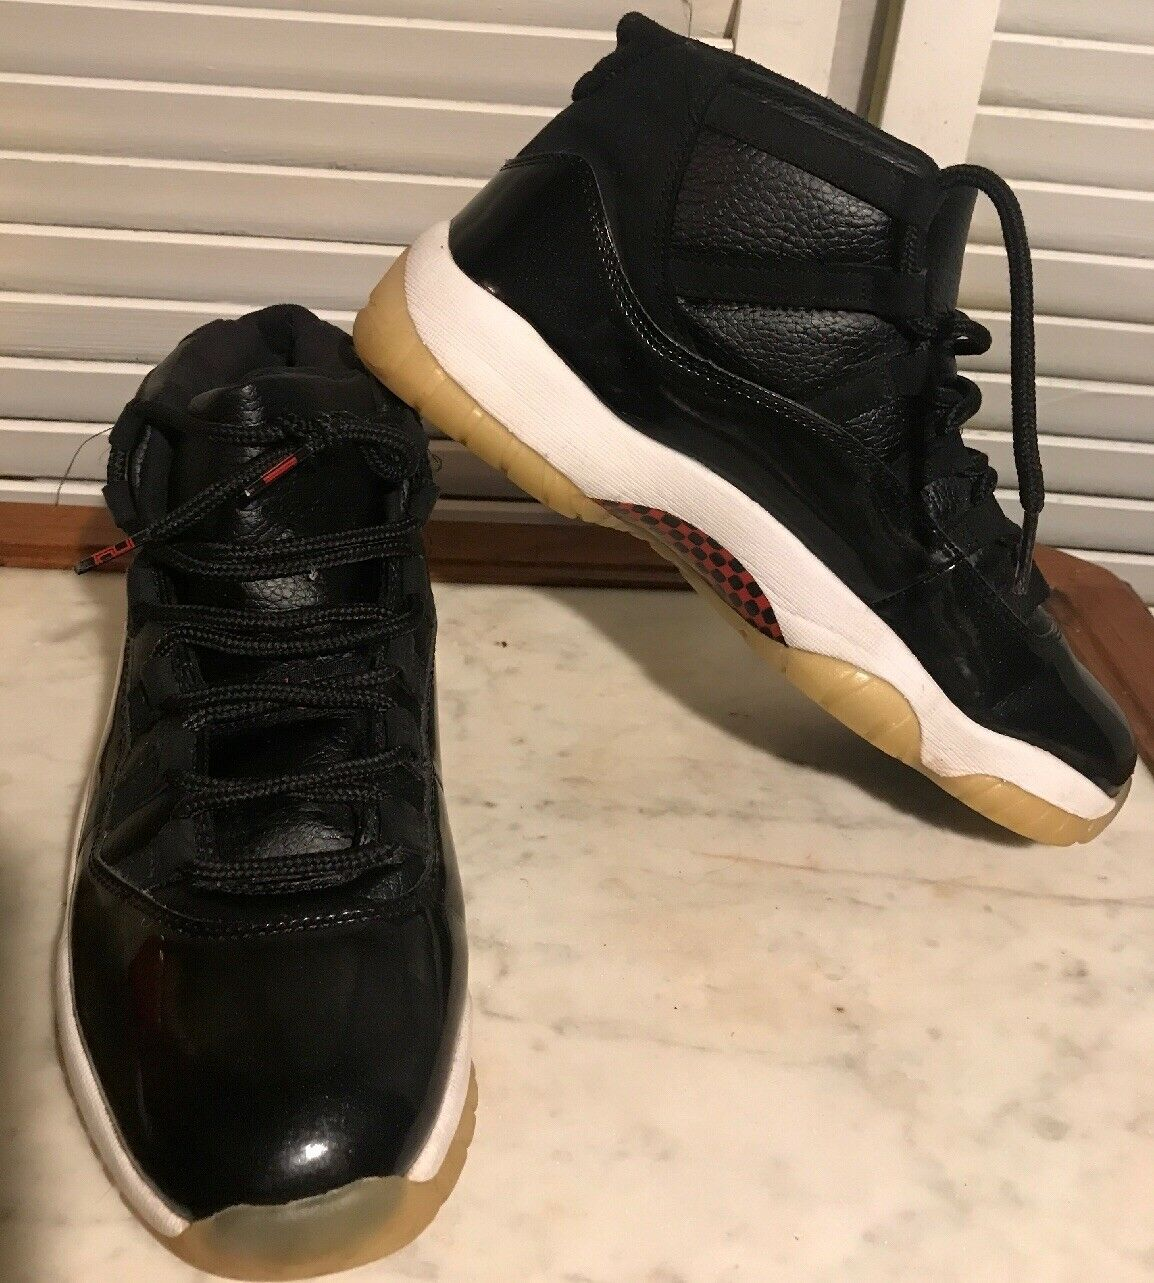 2018 Nike Air Retro 11 Space Jam Concord  Size 9.5